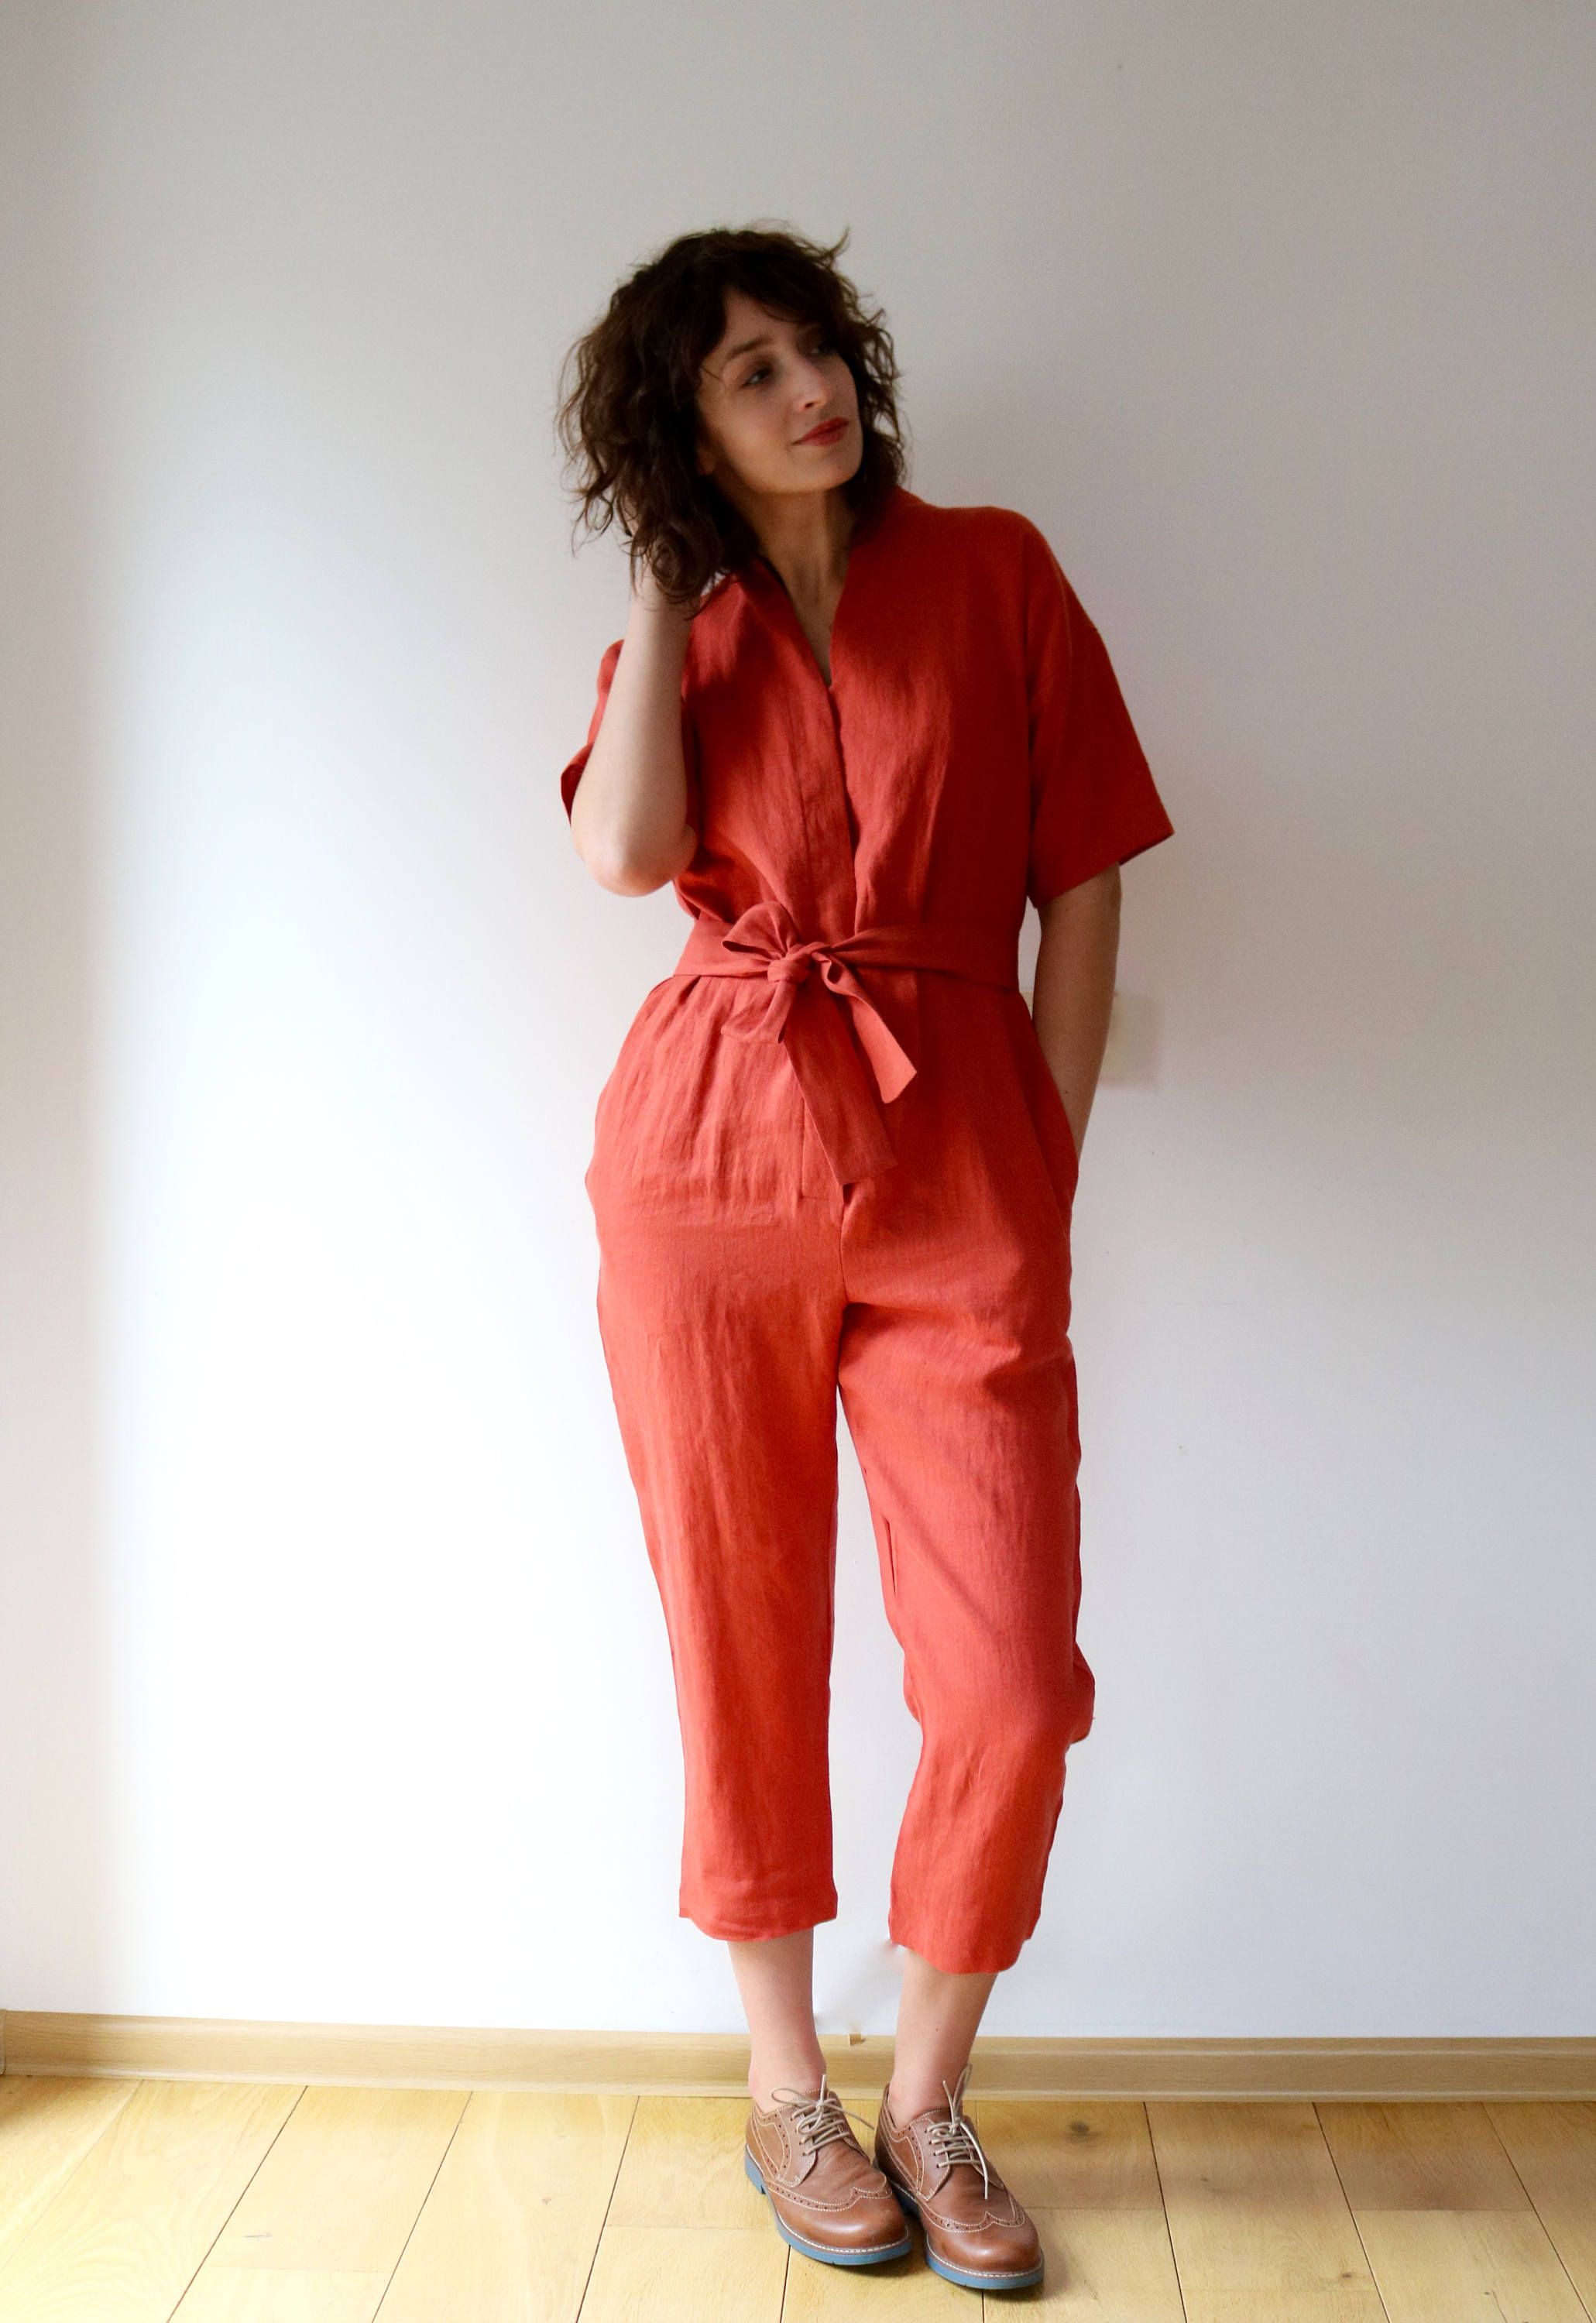 24c0f2dec90 Linen Jumpsuit - Linen Kimono Jumpsuit - Burnt Orange Linen Jumpsuit -  Short Sleeve Romper - Burnt Orange Linen Overall - Handmade by OFFON by  OffOn on Etsy